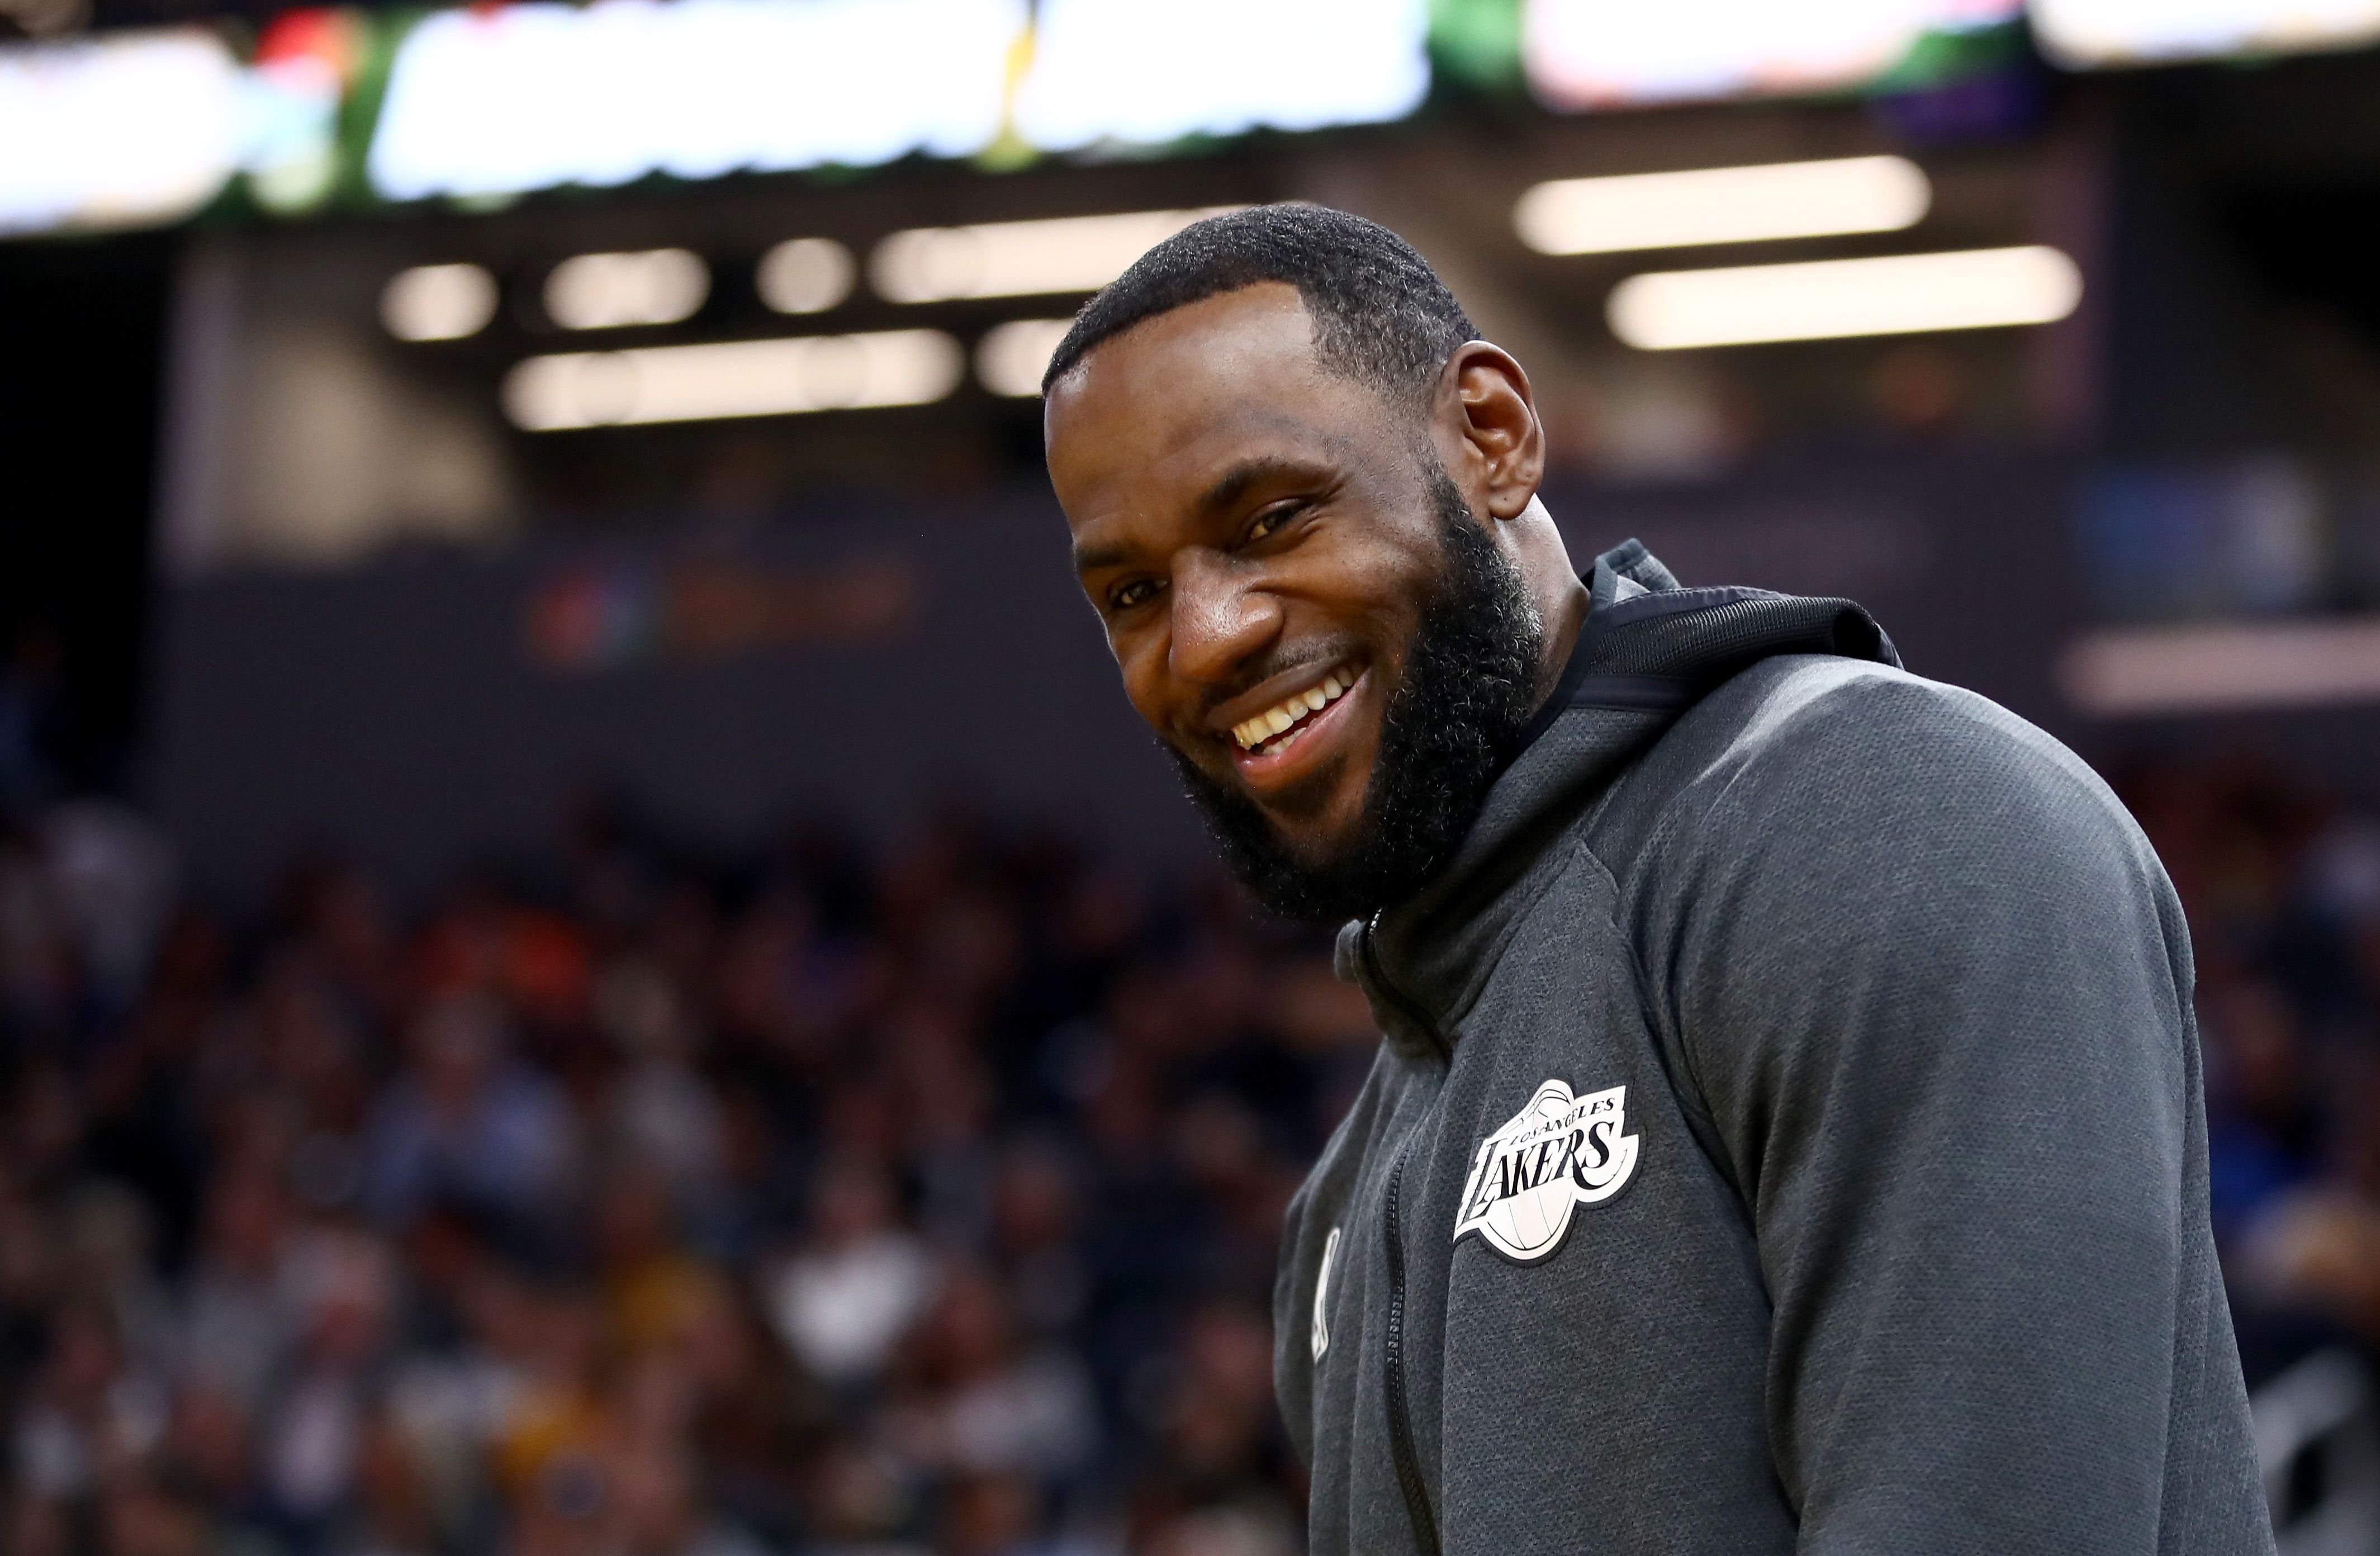 LeBron James during pre-game at a Los Angeles Lakers NBA game | Source: Getty Images/GlobalImagesUkraine